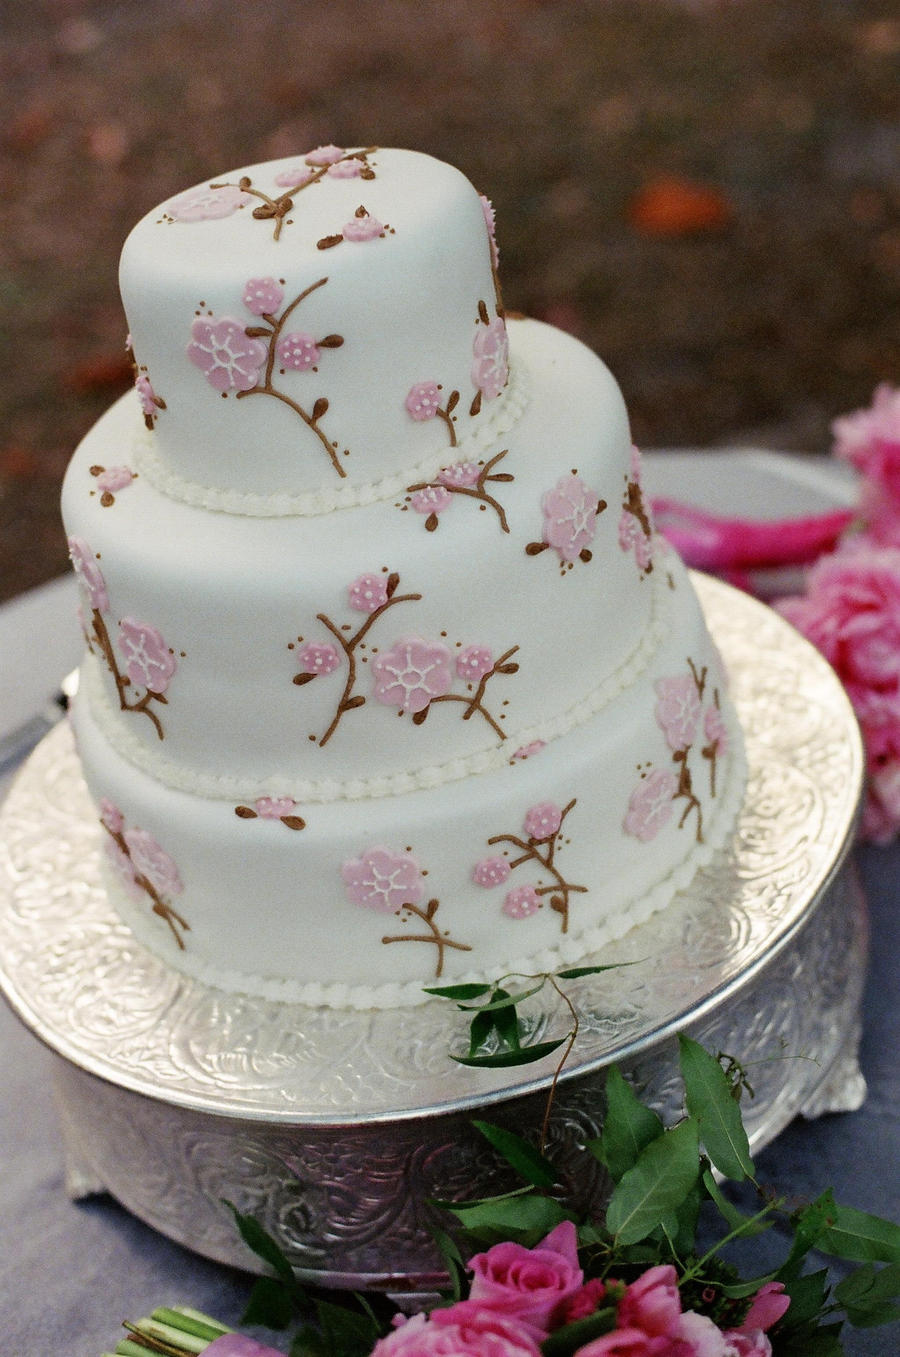 Cherry Blossom Wedding Cake By Ncspurlin On Deviantart